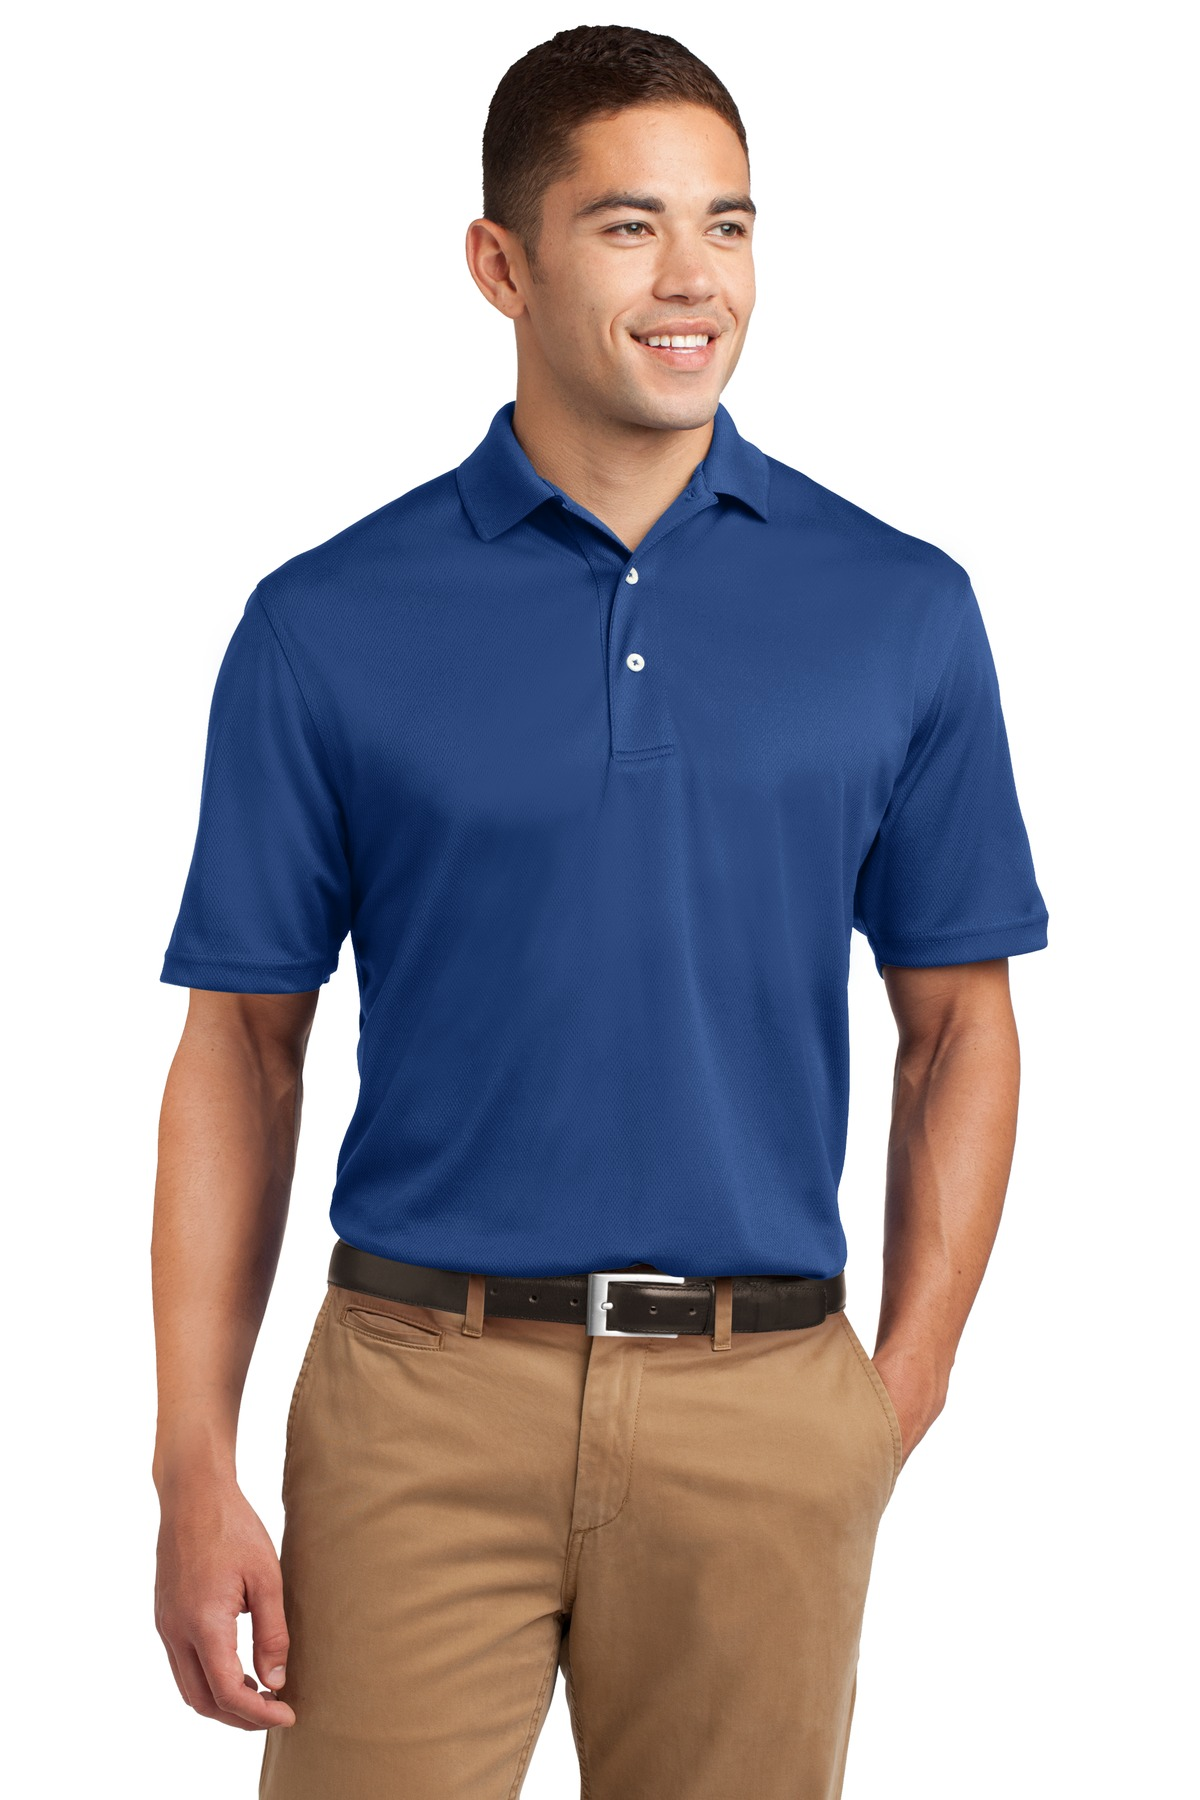 Sport-Tek ®  Dri-Mesh ®  Polo.  K469 - Royal